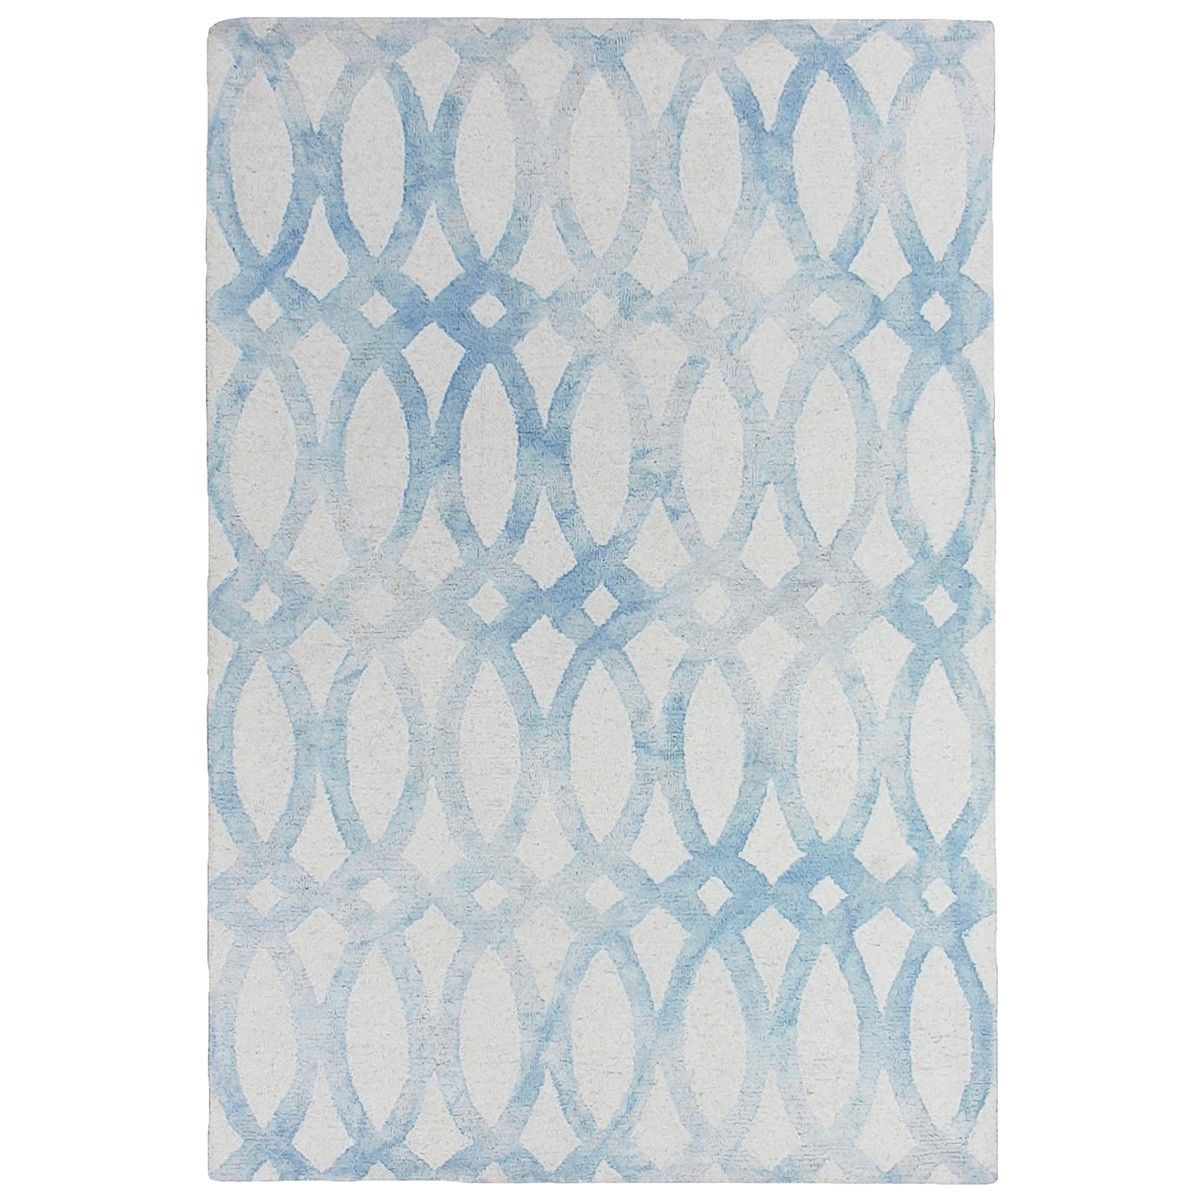 Dip Dye Hand Tufted Wool Rug, 300x400cm, Blue